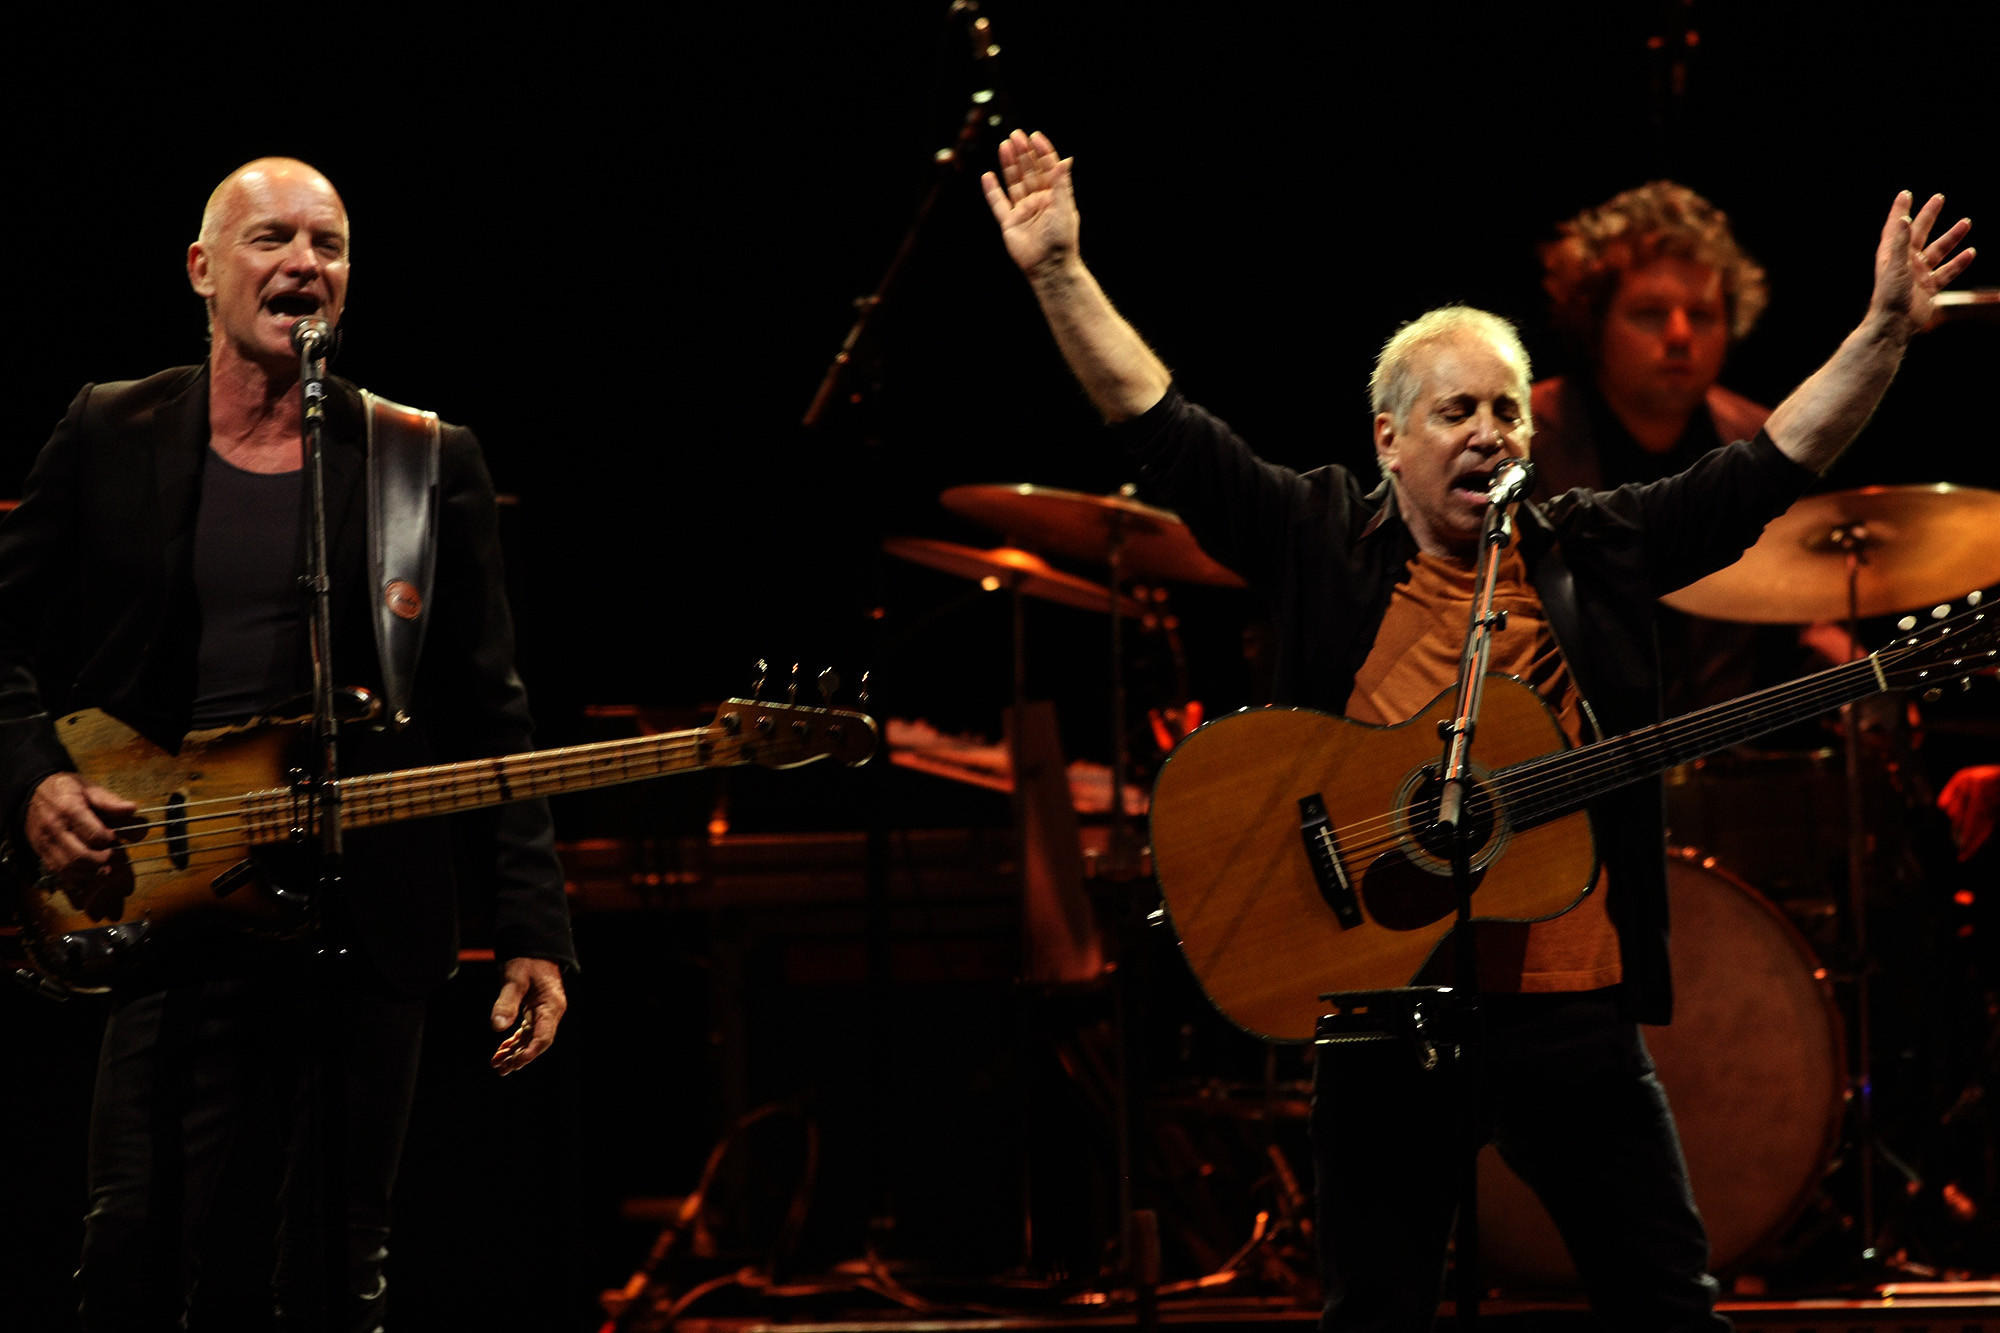 Sting, left, and Paul Simon perform a joint concert Saturday night at the Forum in Inglewood.